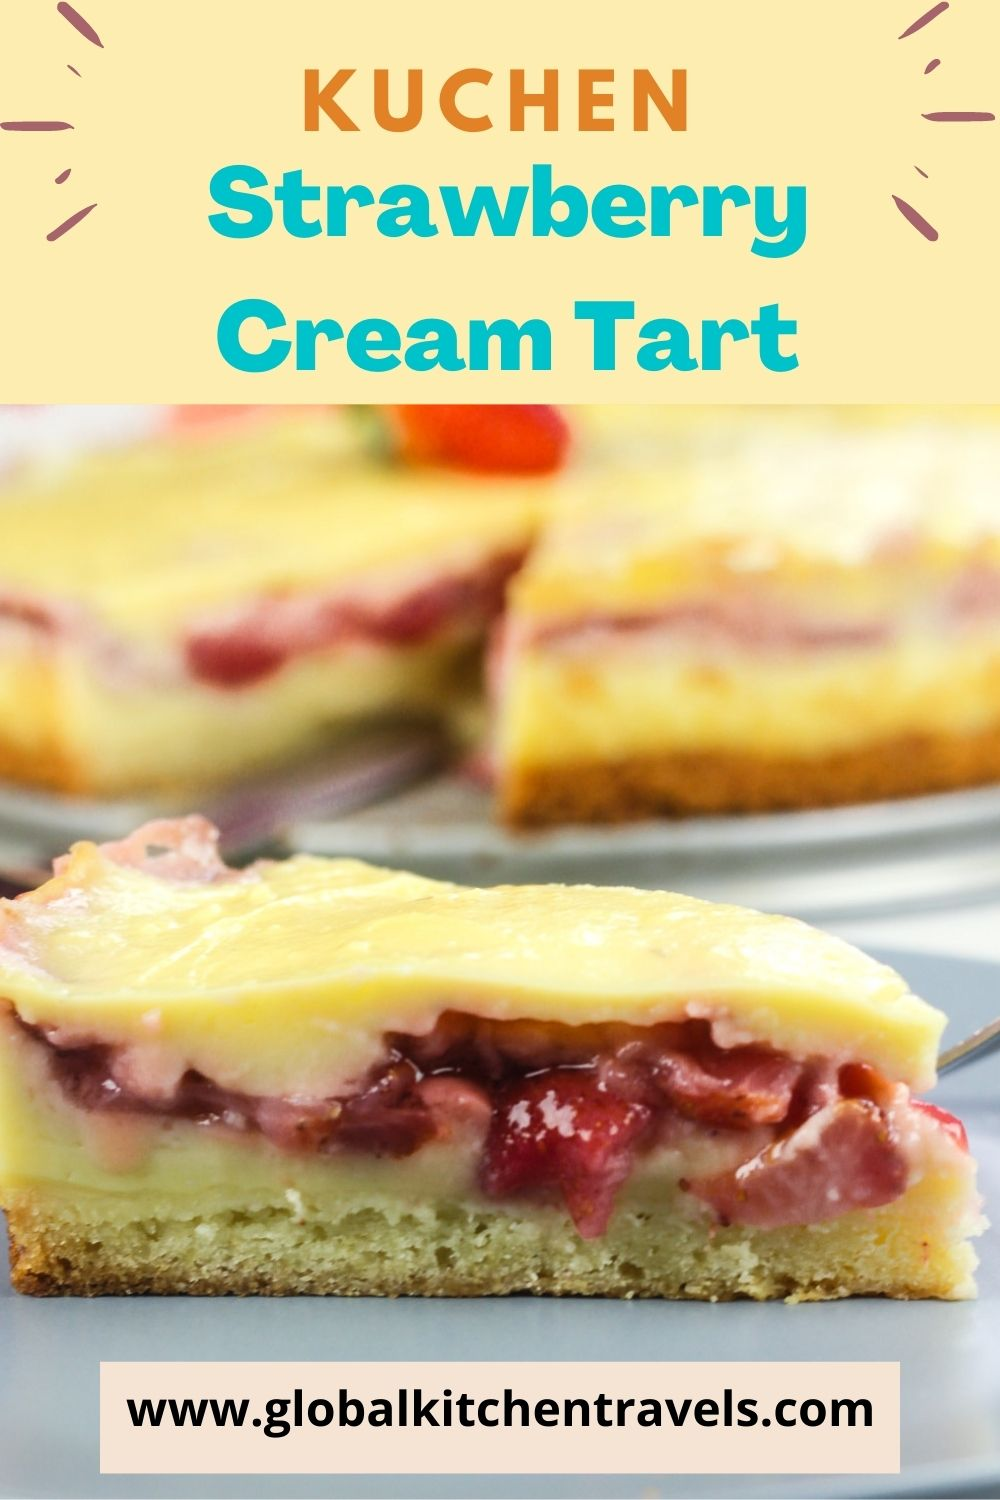 slice of Strawberry Cream Tart on a plate with text